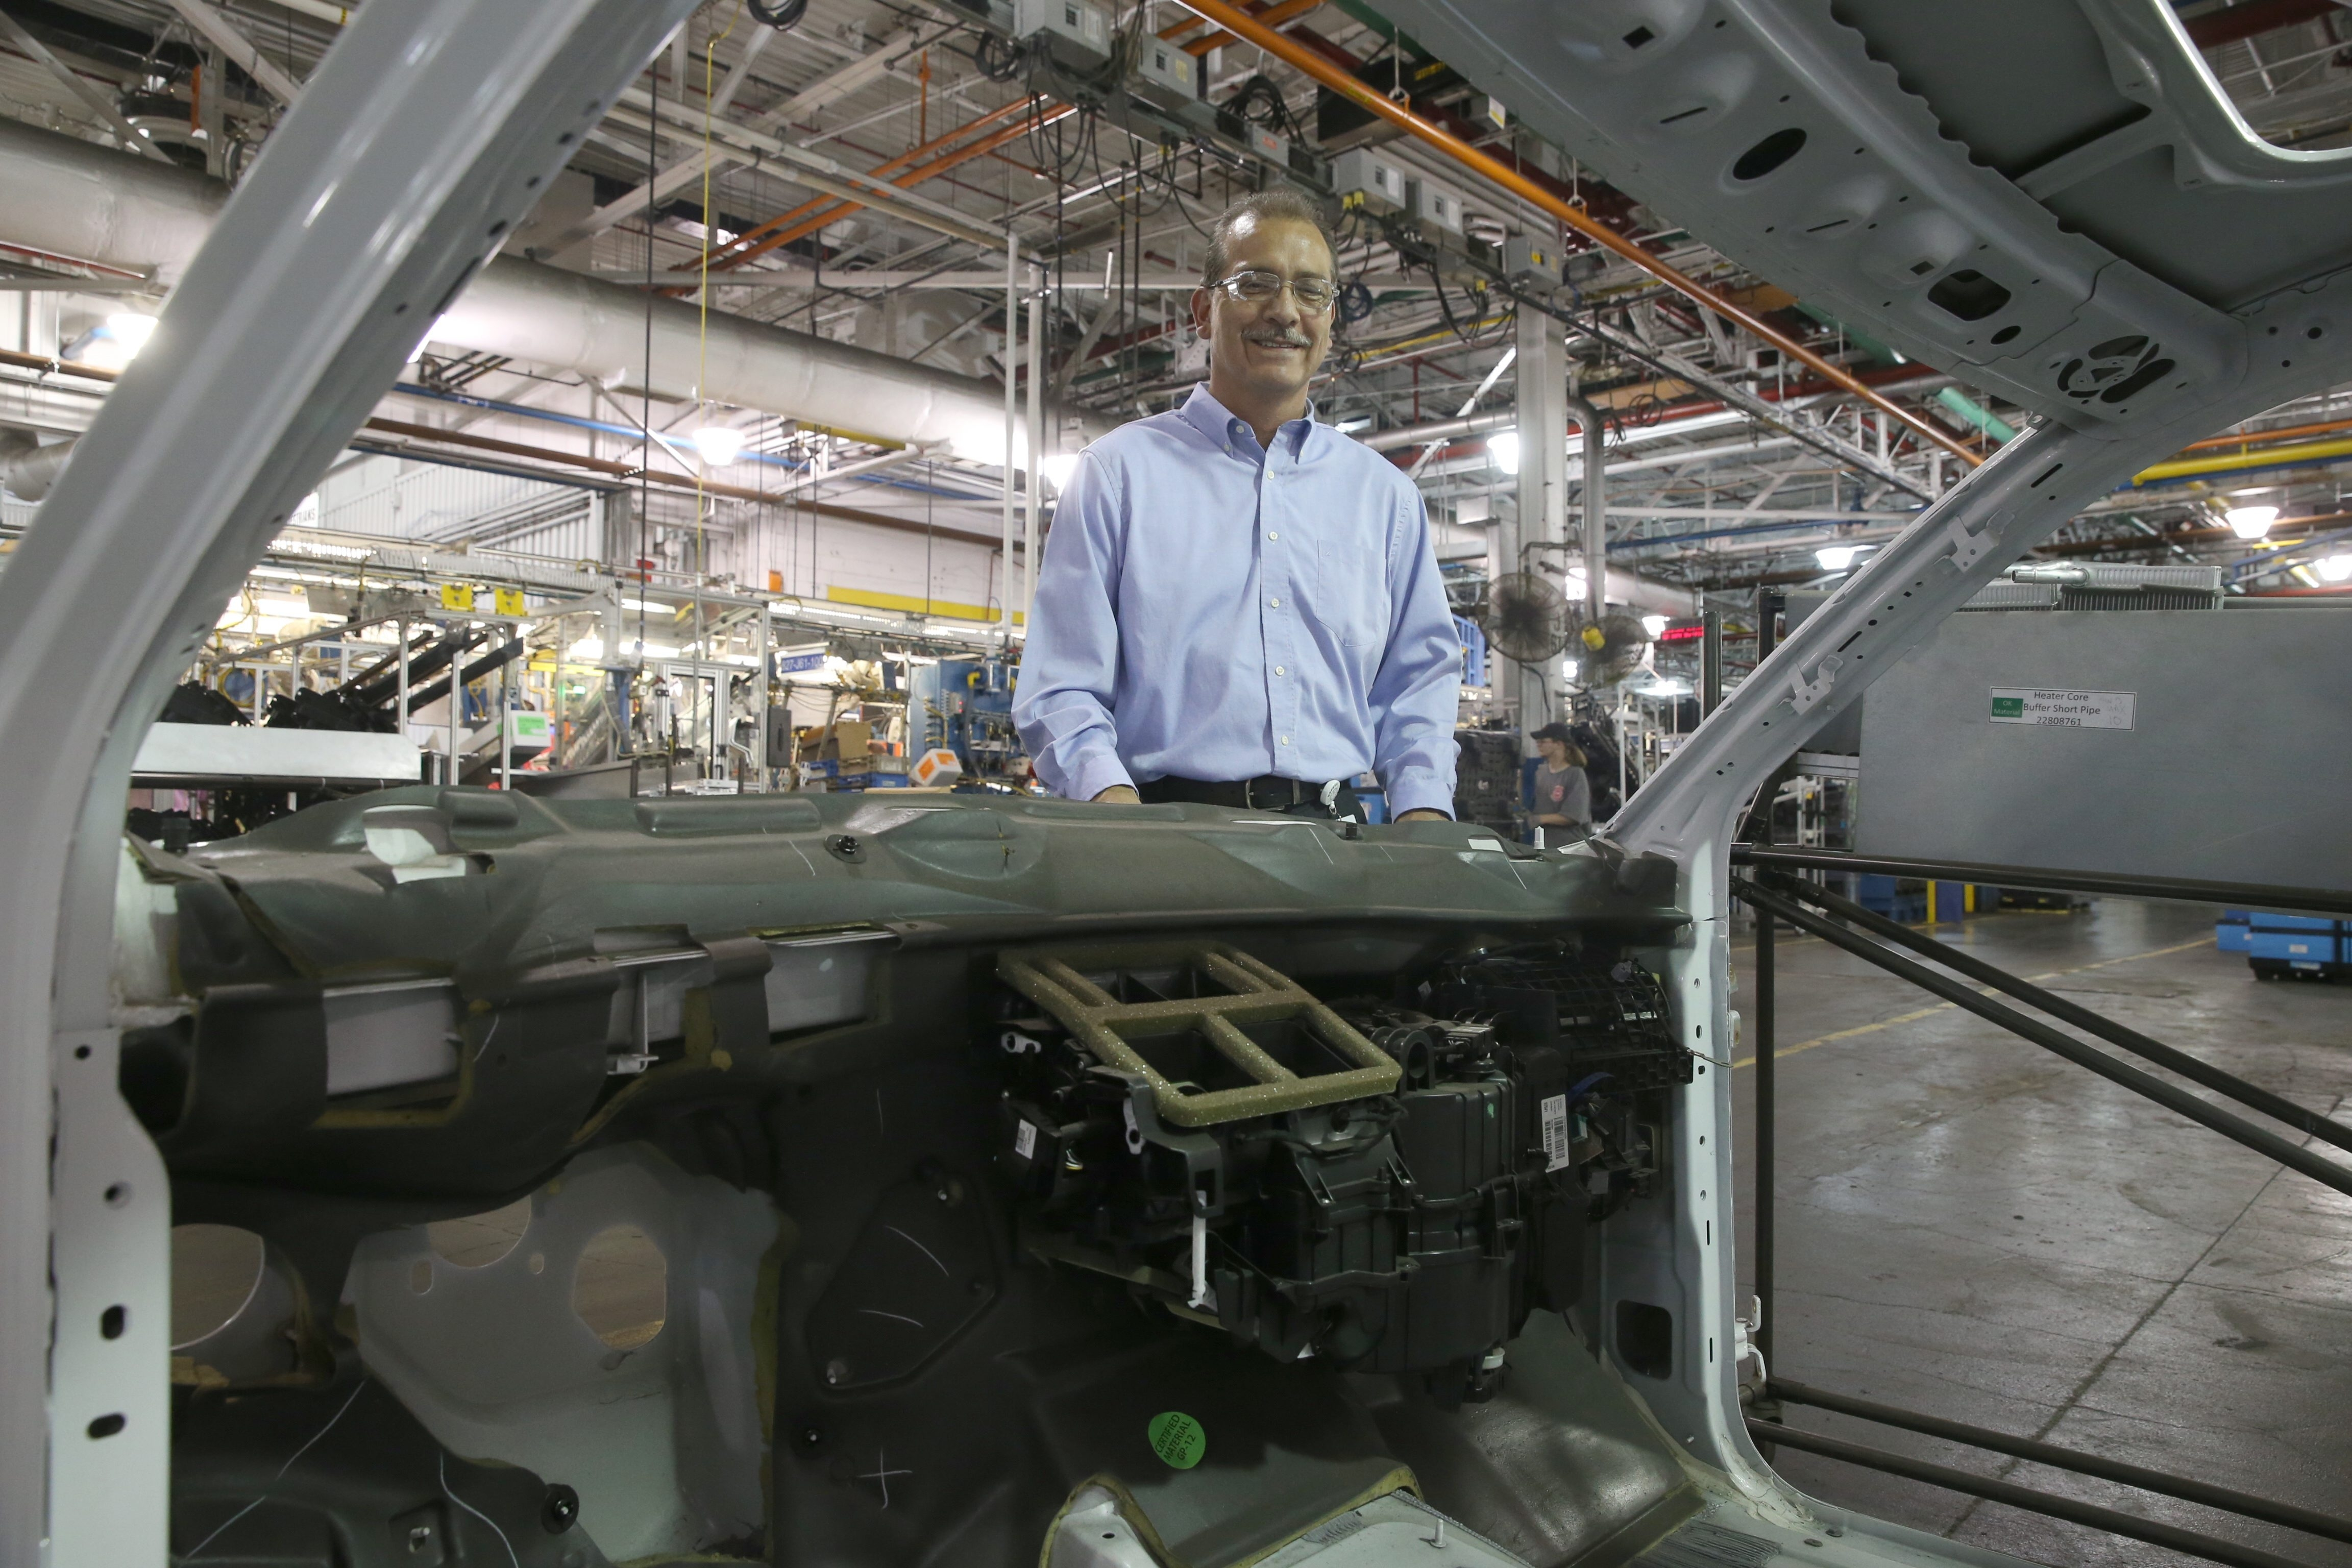 William Tiger, the new plant manager at GM Components Holdings (the former Delphi and Harrison Radiator complex) with the mock up of plastic parts for a Chevy Tahoe in Lockport, N.Y., on Friday,  Aug. 7, 2015. (John Hickey/Buffalo News)